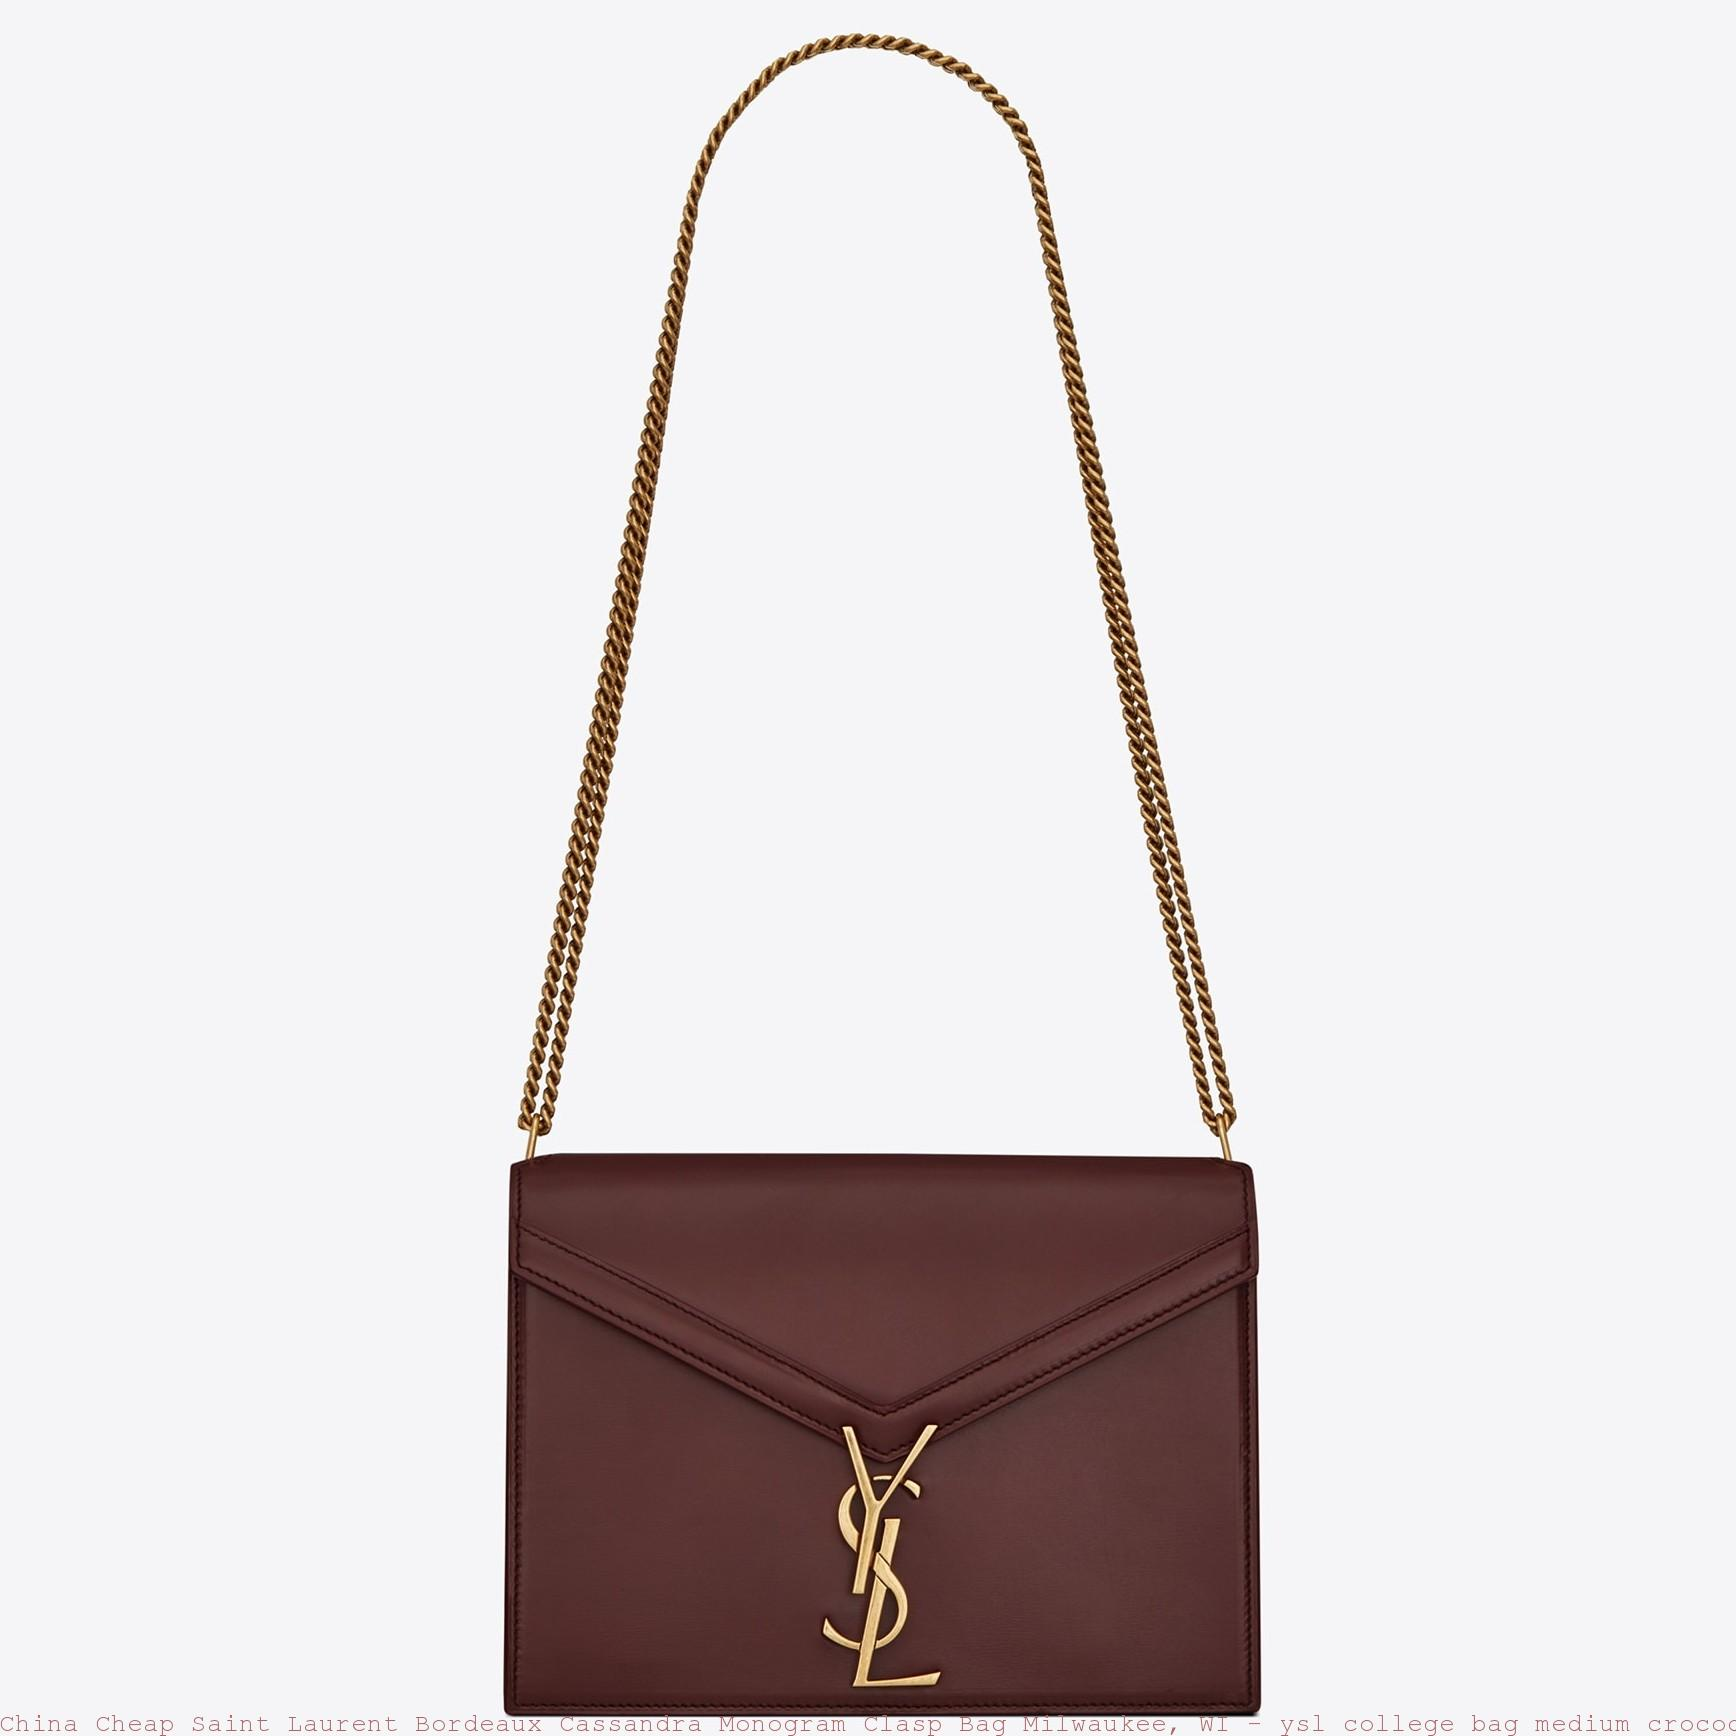 5d54d4a7a7 China Cheap Saint Laurent Bordeaux Cassandra Monogram Clasp Bag ...